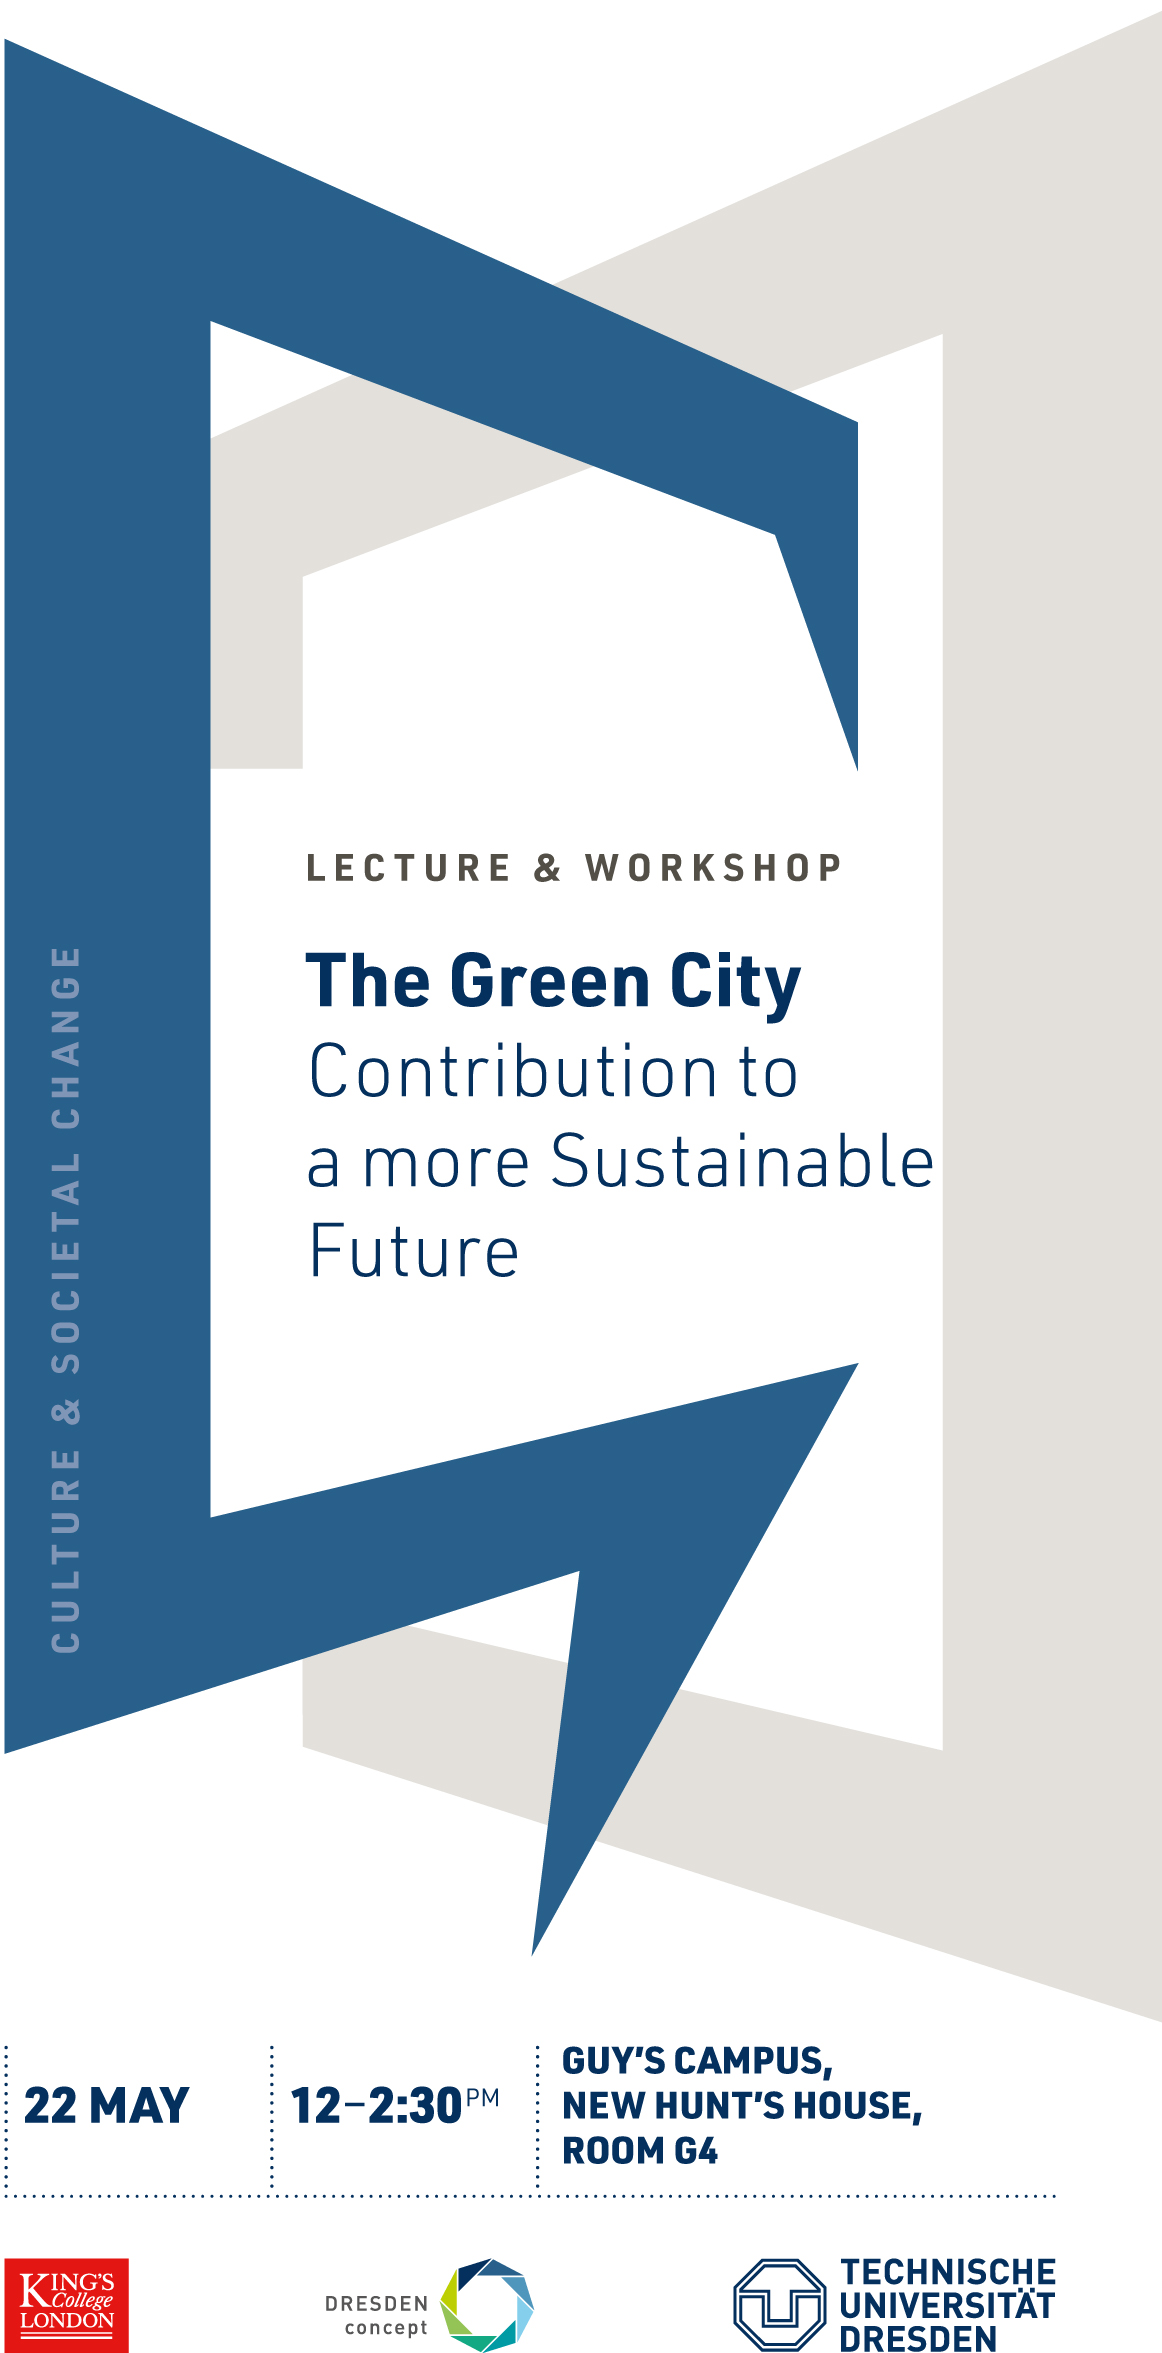 The Green City Contribution to a more Sustainable Future